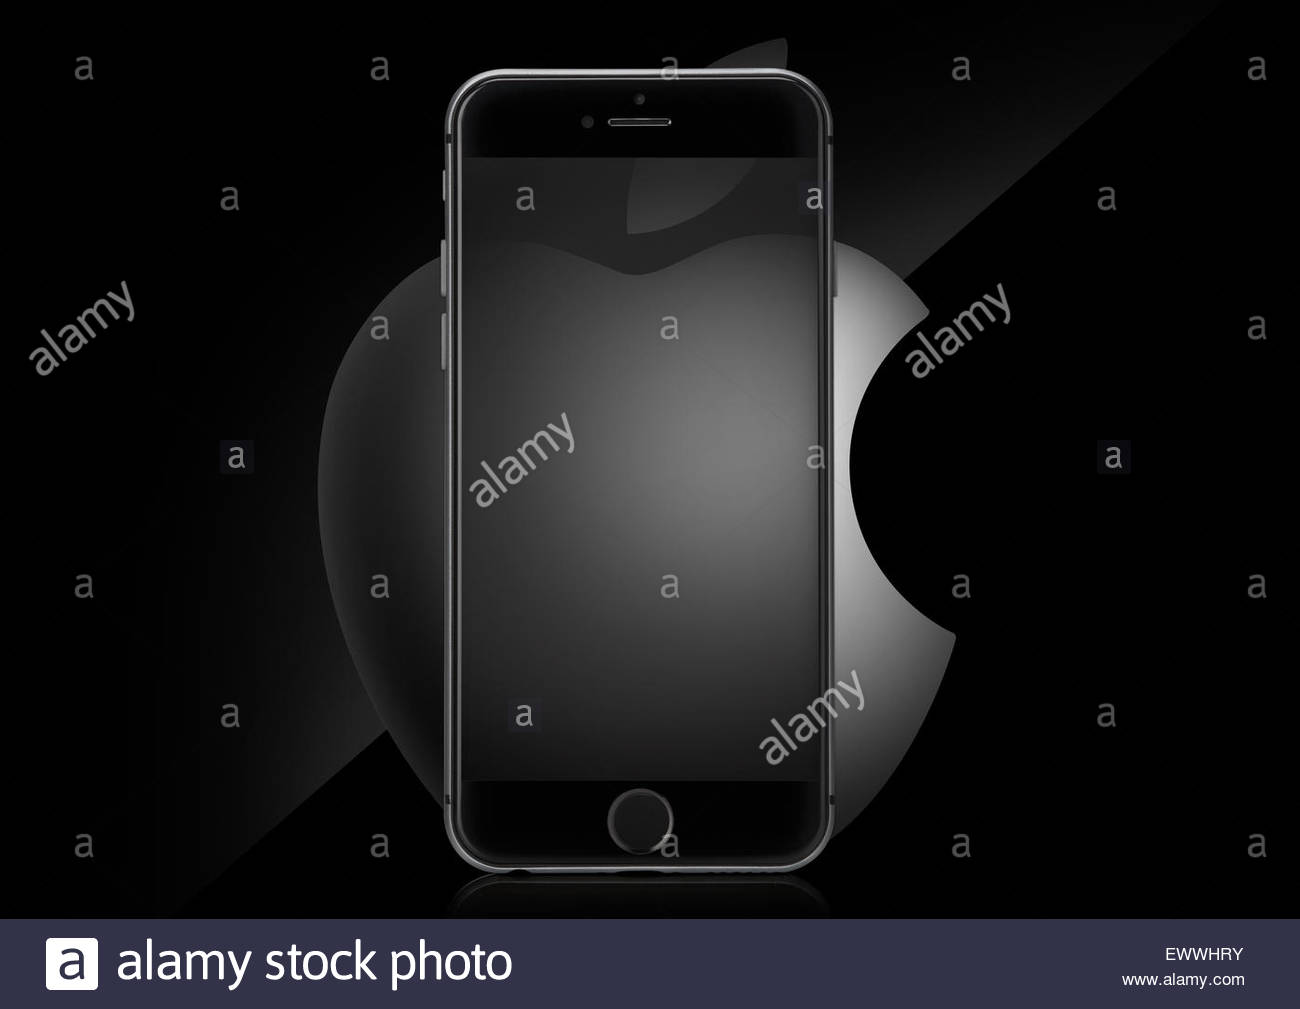 Apple Logo with Apple Iphone 6 on top and a black background - Stock Image